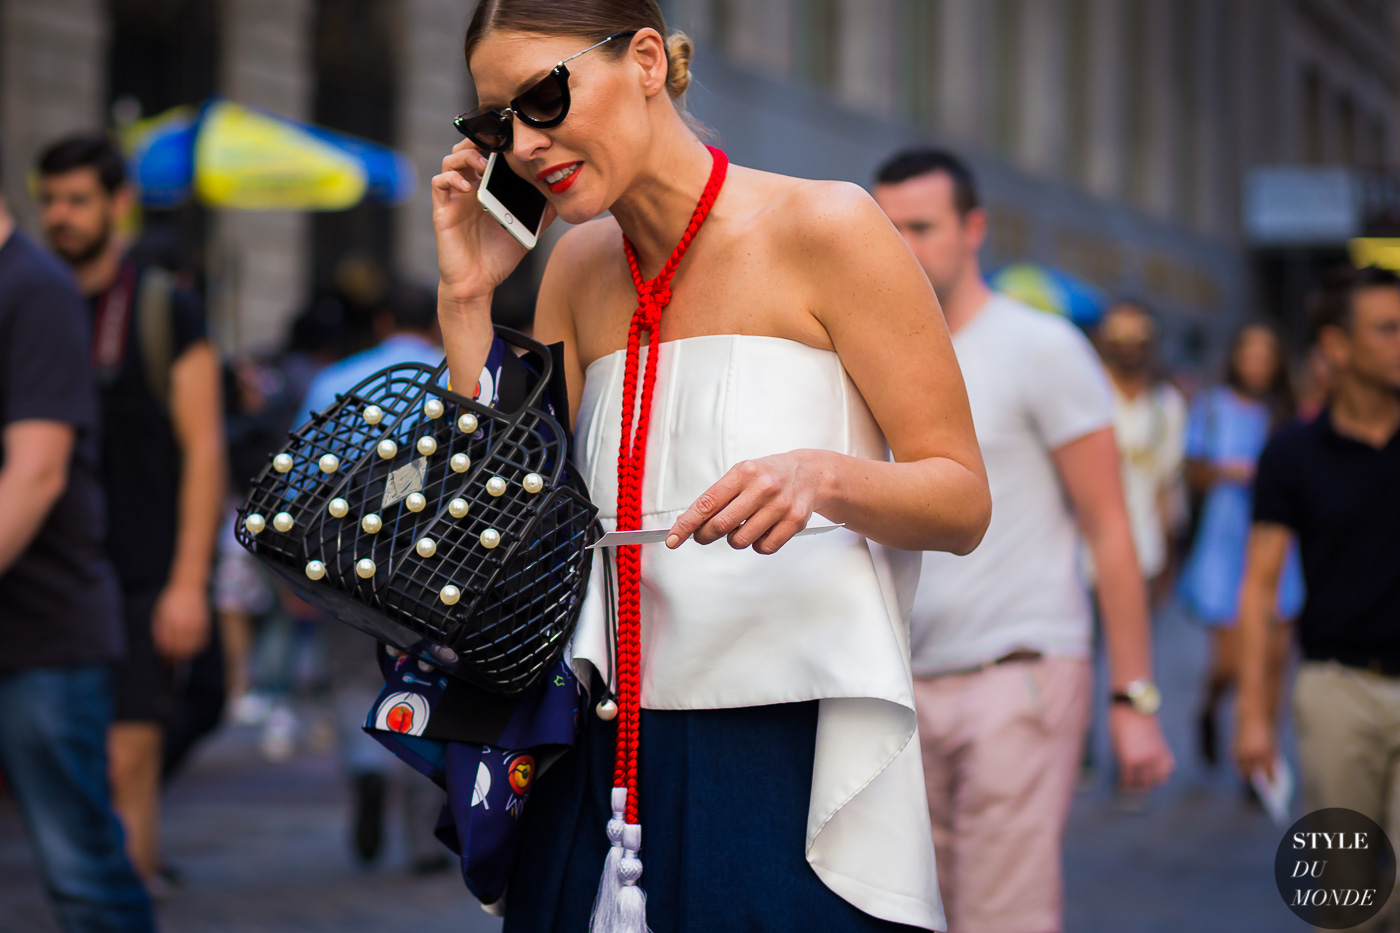 After Diesel Street Style Street Fashion Streetsnaps by STYLEDUMONDE Street Style Fashion Photography